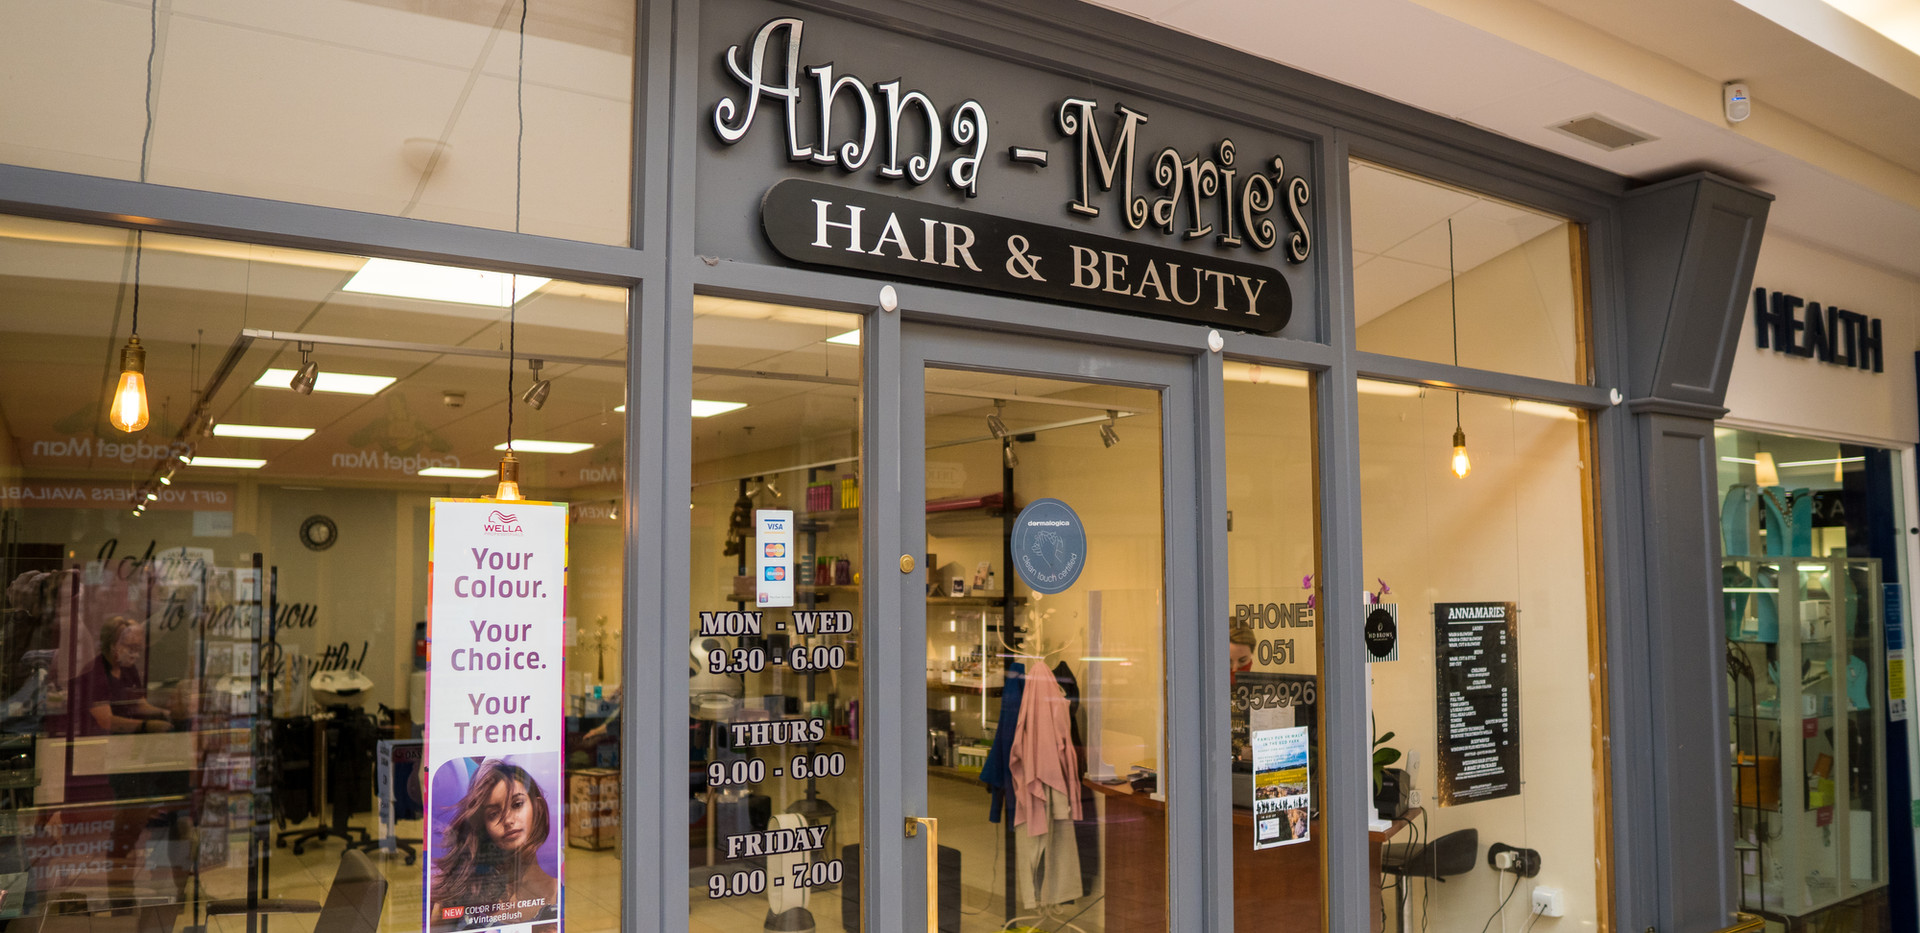 Anna Marie's Hair & Beauty